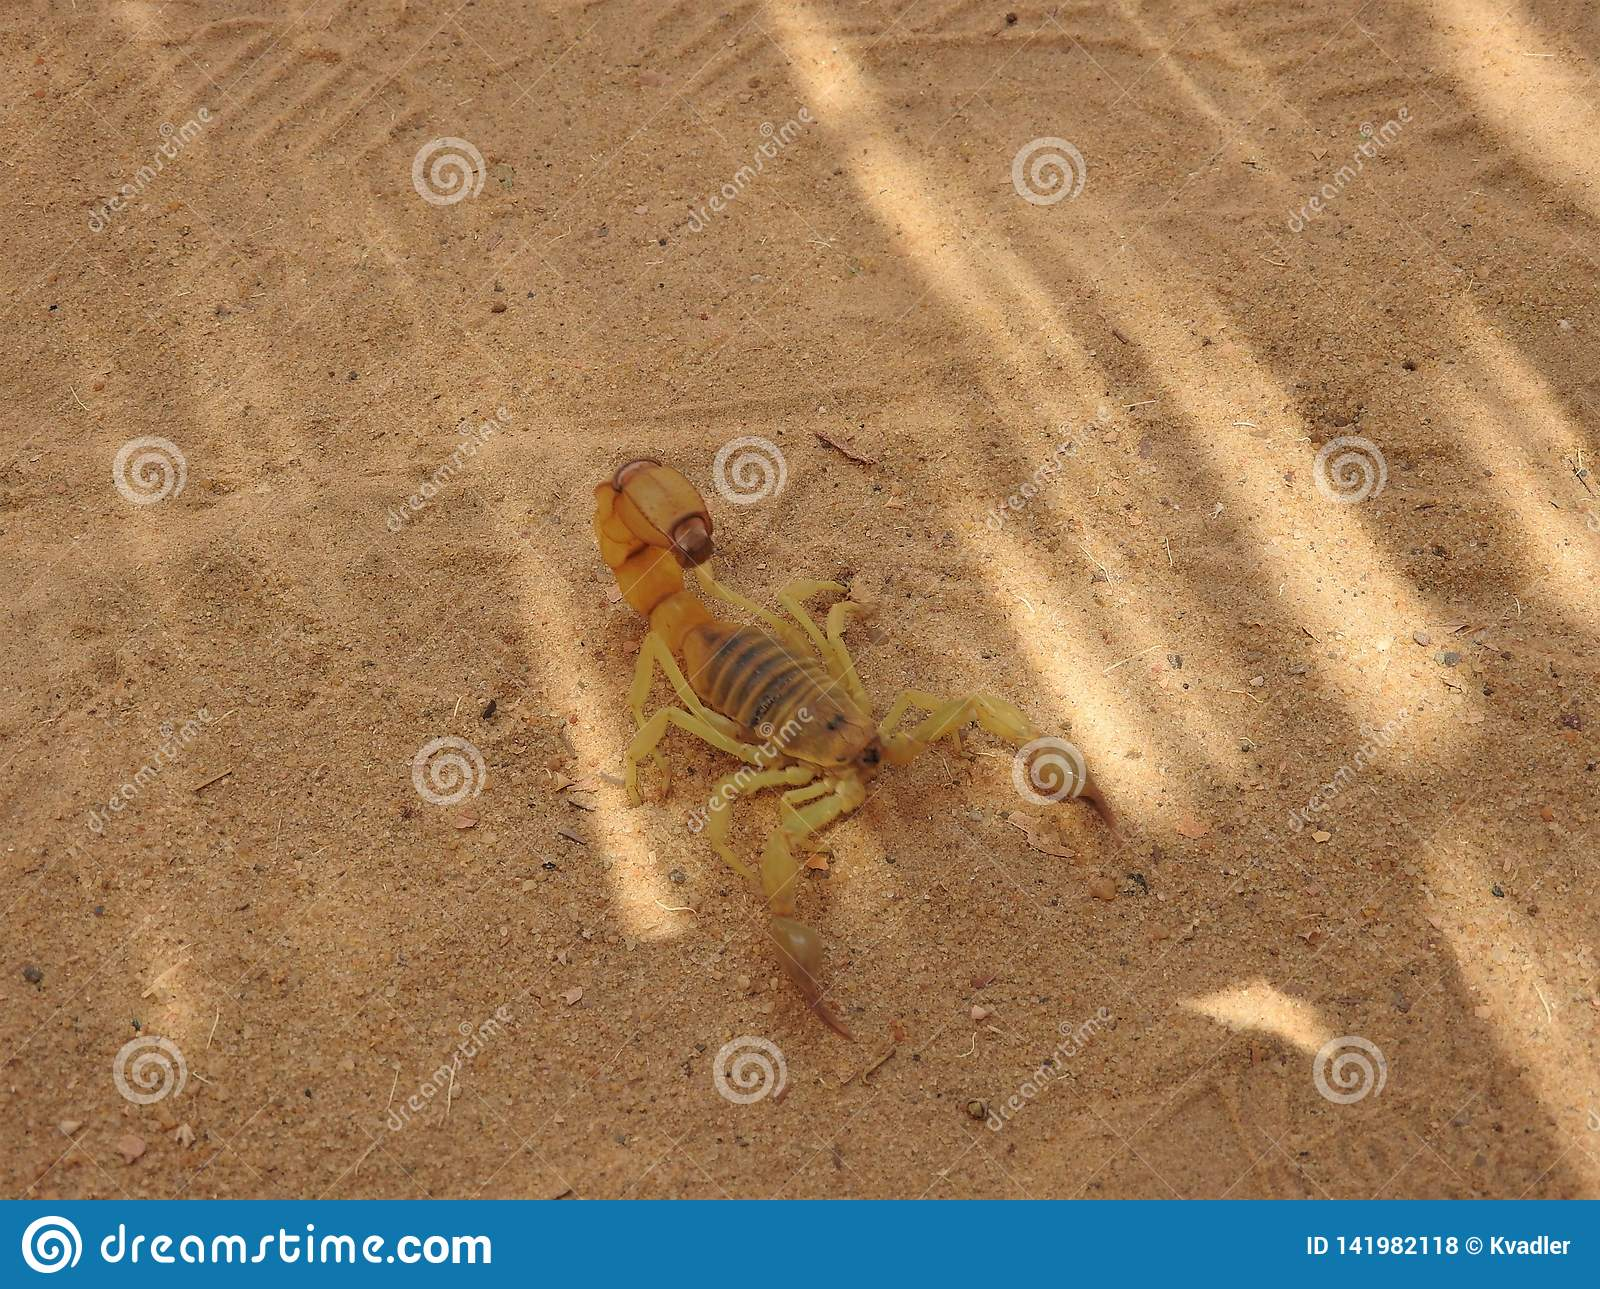 Scorpio on the sand in its natural habitat, Africa clear day